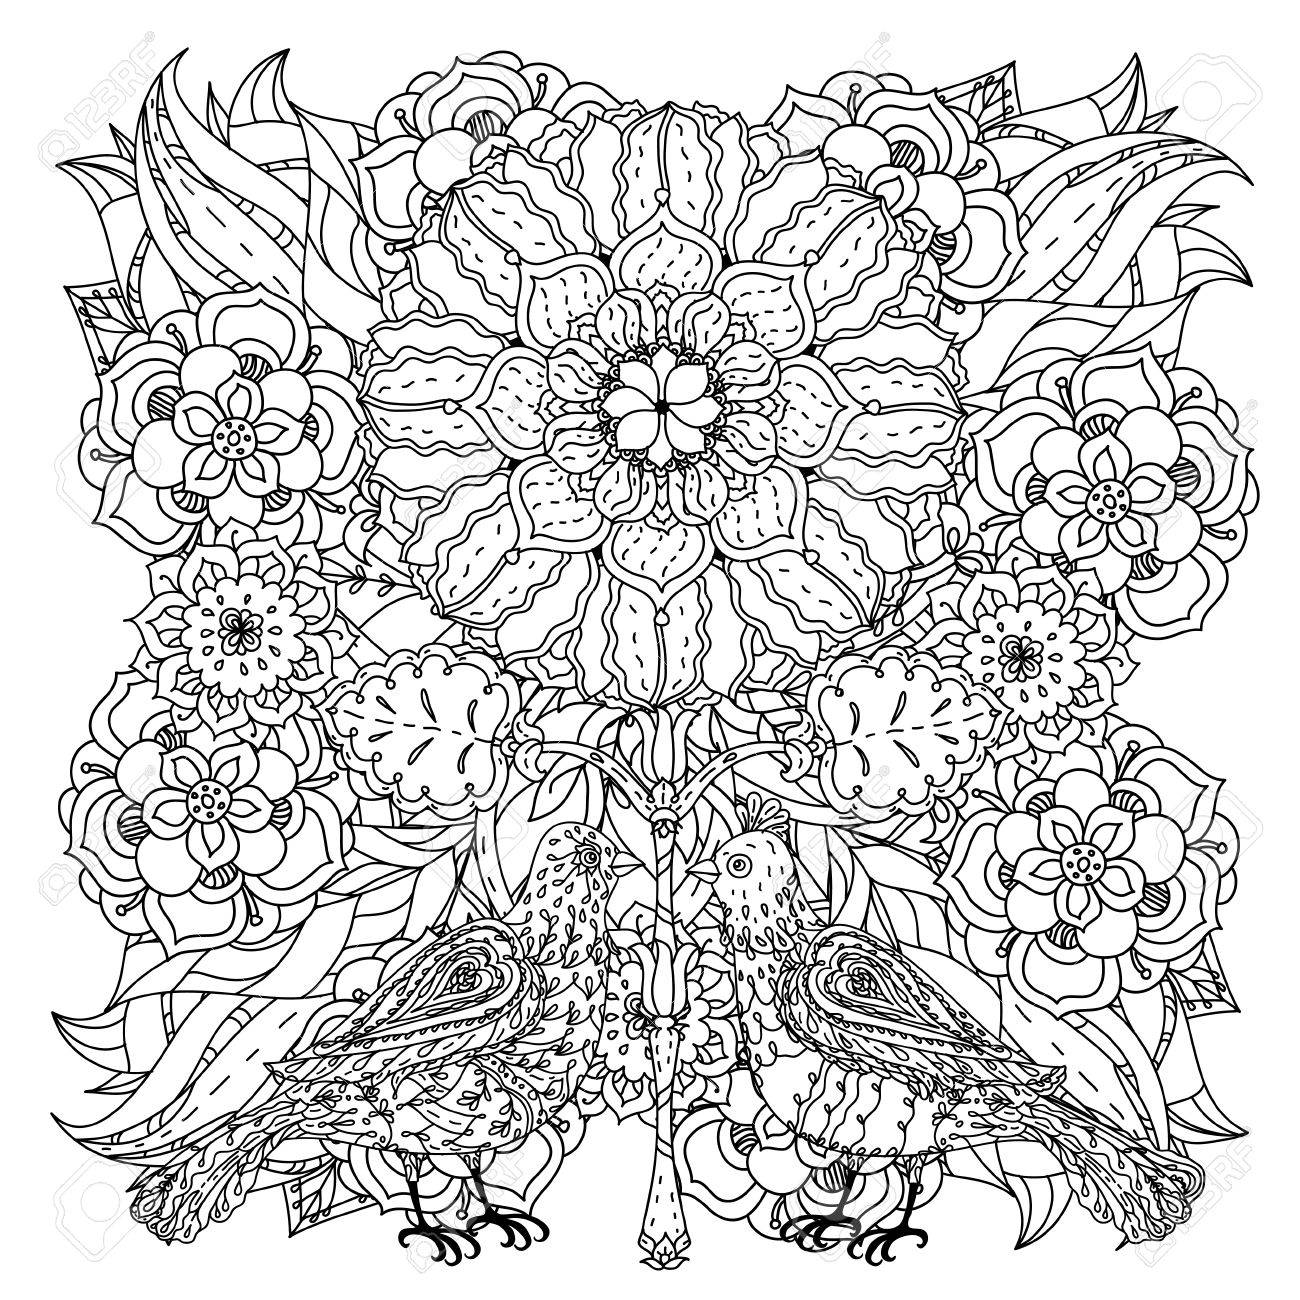 Contoured mandala shaped flowers and birds for adult coloring..